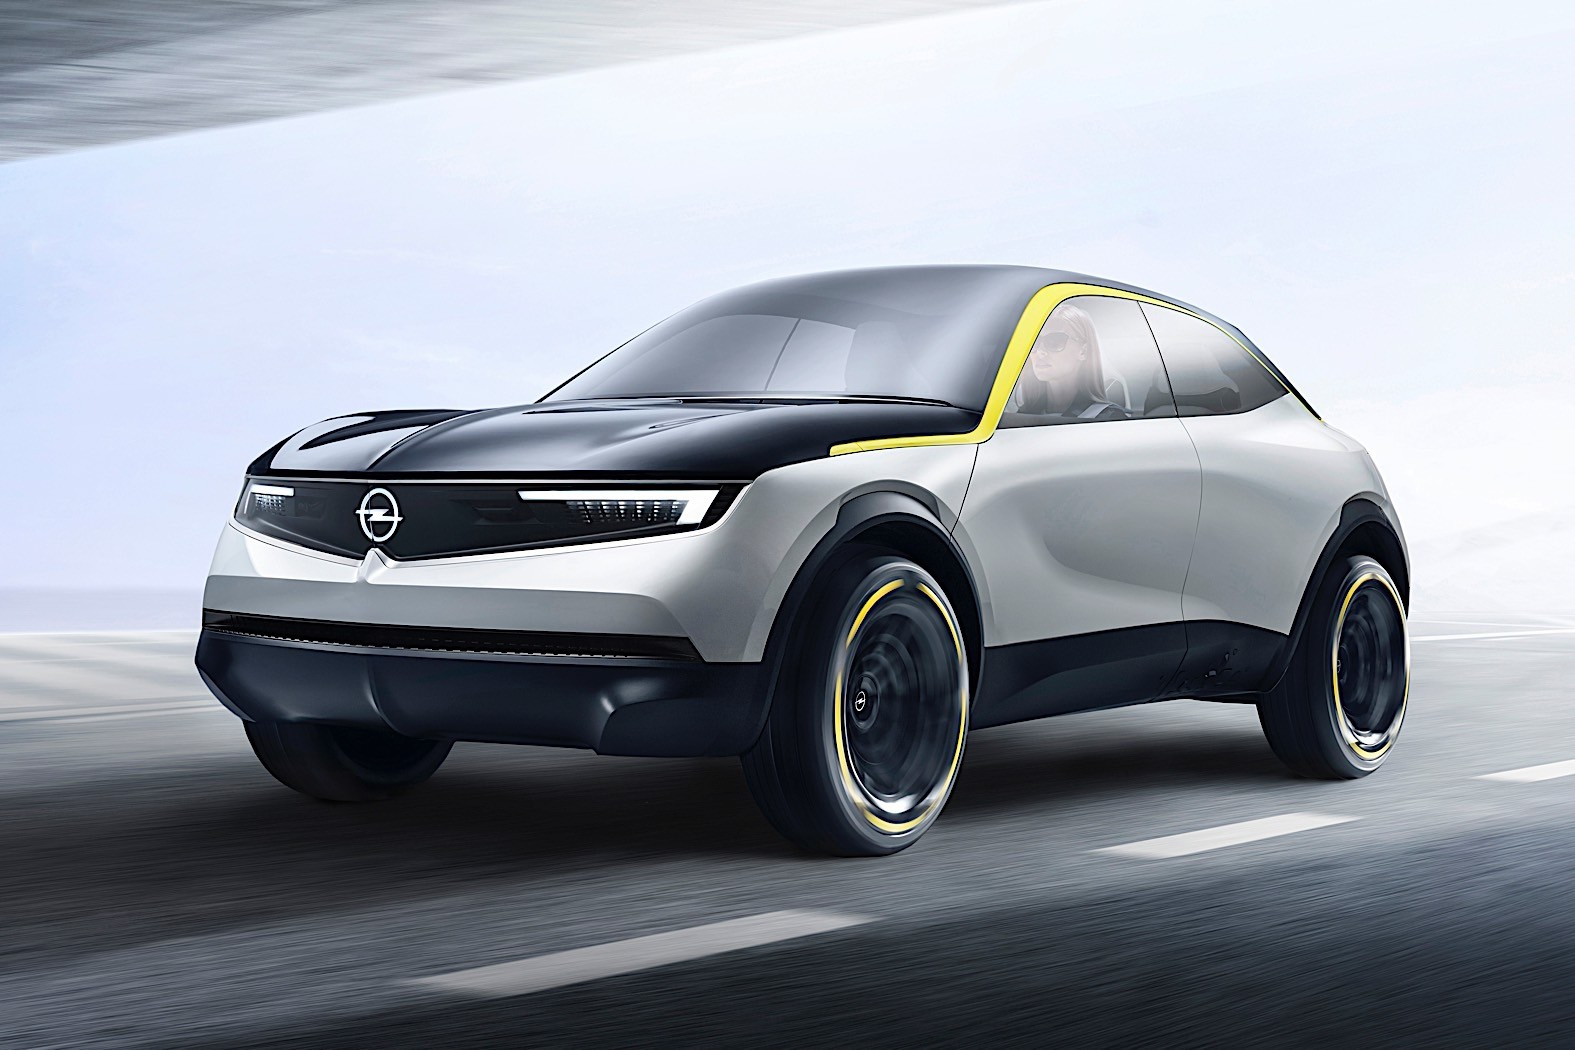 opel gt x experimental electric suv unveiled with suicide doors autoevolution. Black Bedroom Furniture Sets. Home Design Ideas